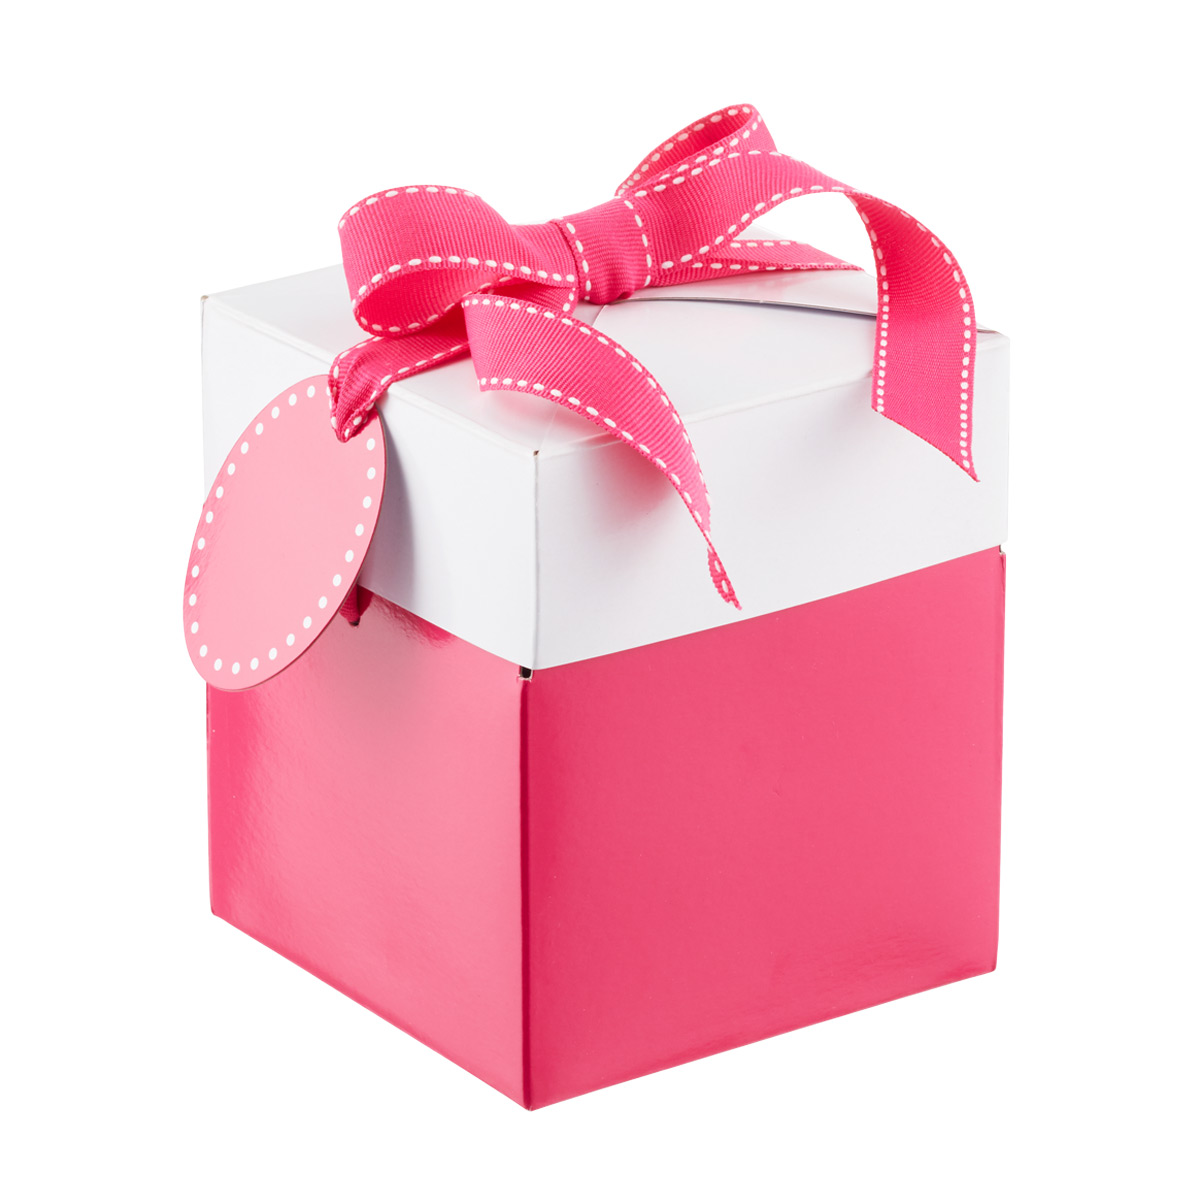 Large Pop-Up Gift Box Pink/Whi